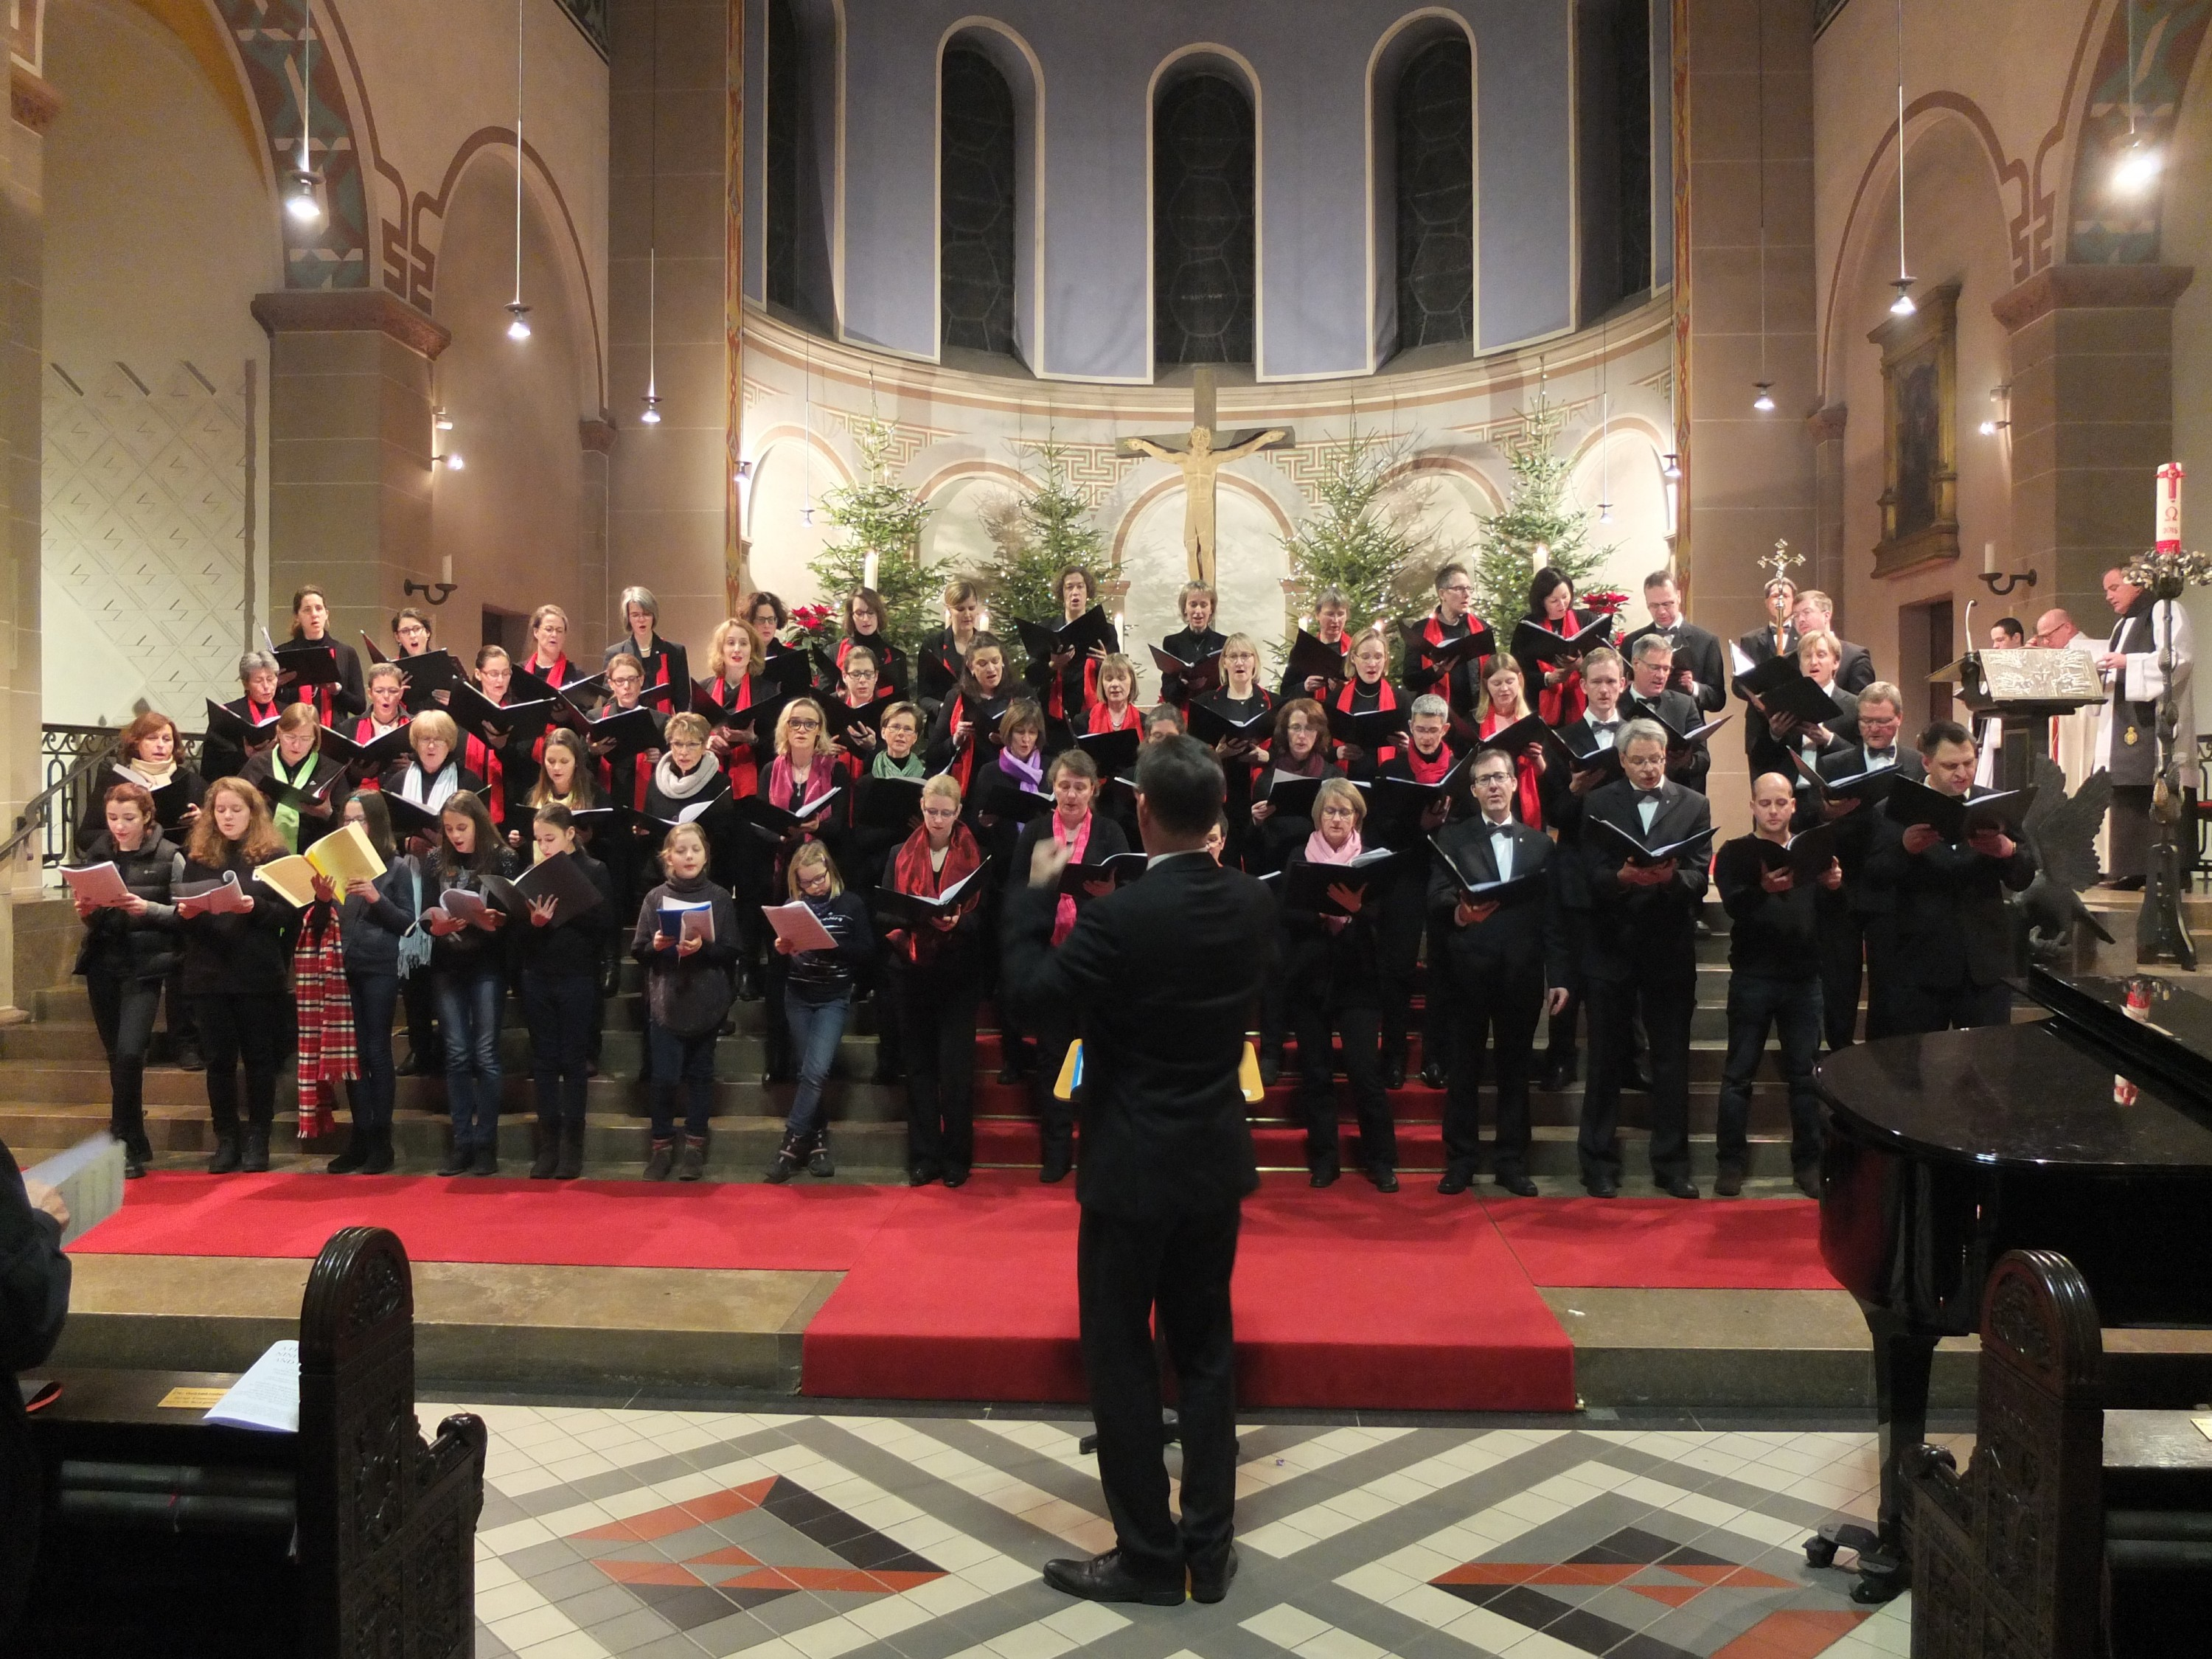 2017 01 07 JKCD Carols St Antonius (c) Peter Zanders (55)